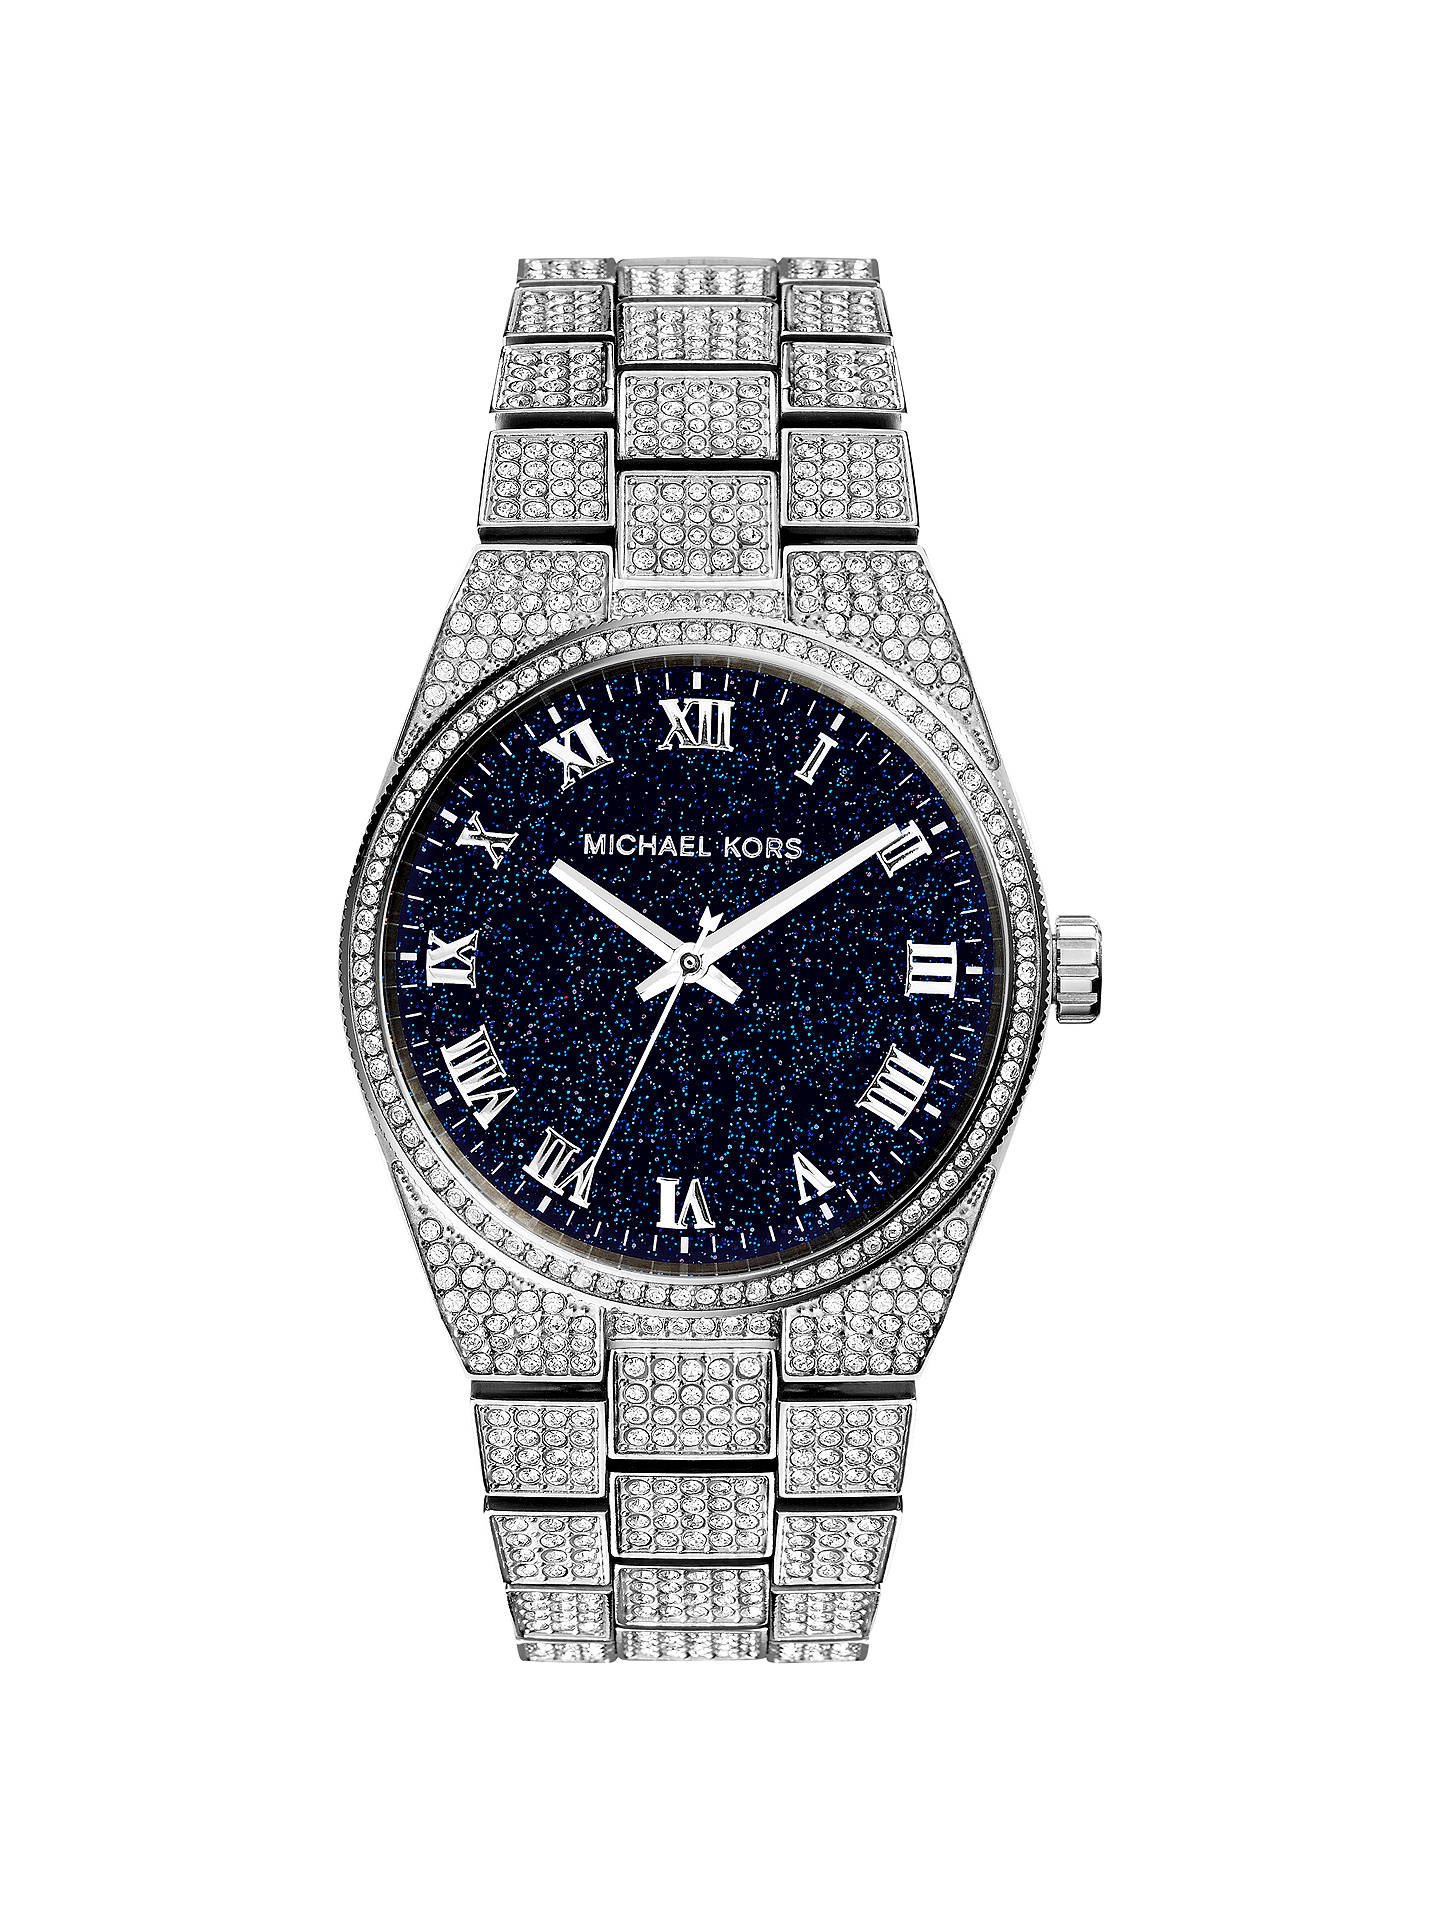 8a06caf915ff Buy Michael Kors Channing MK6089 Women s Pave Quartz Stainless Steel Watch